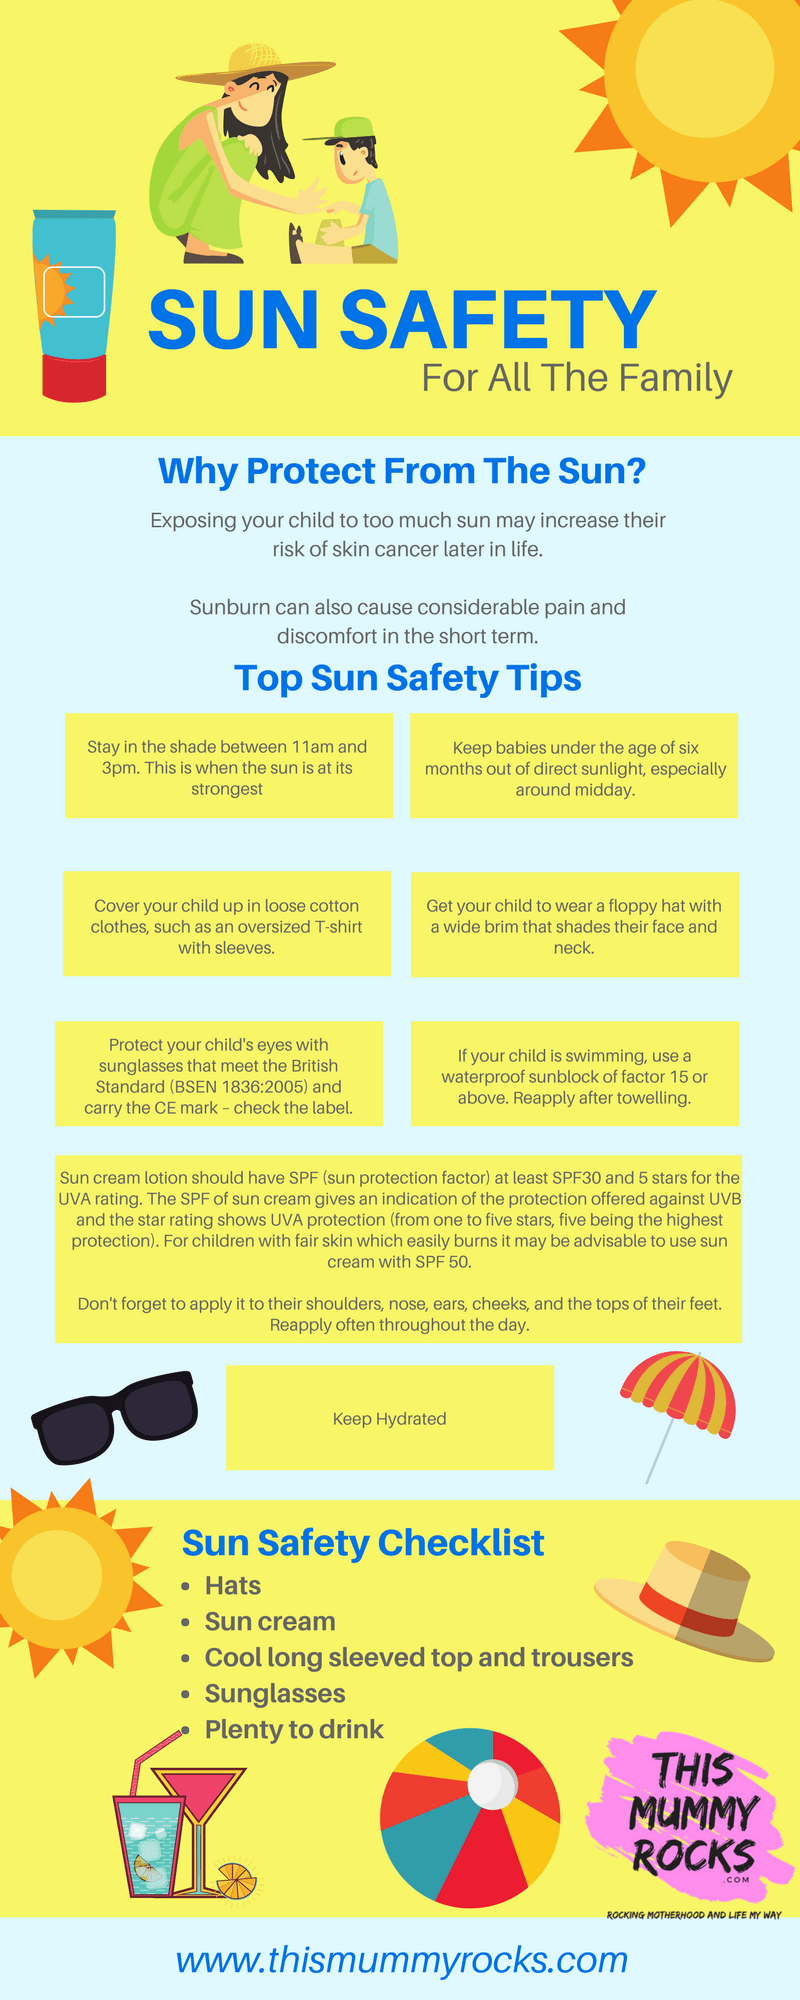 Sun Safety For All Of The Family